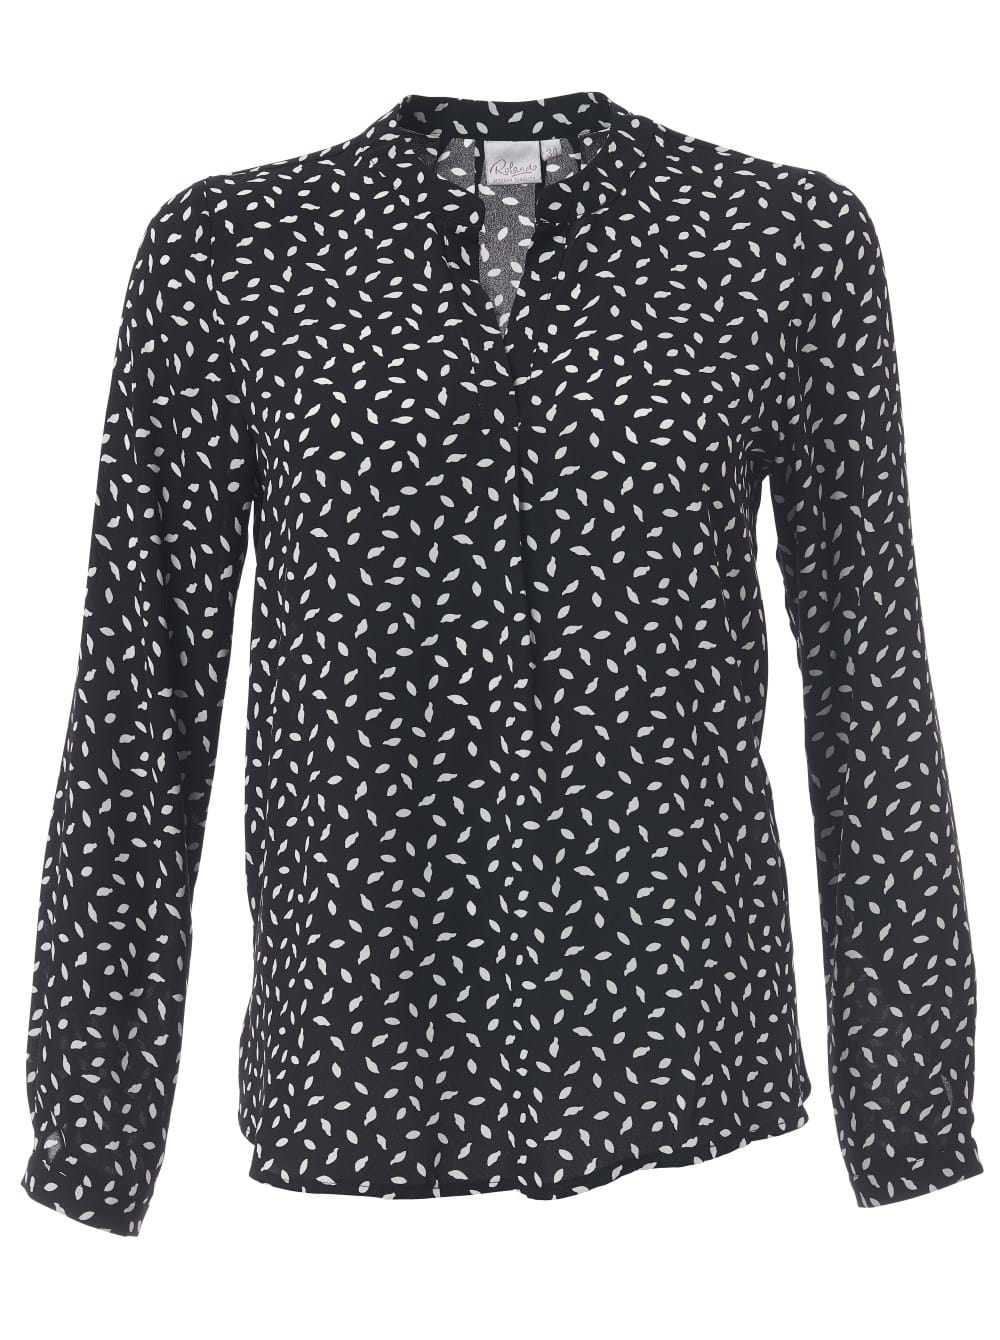 Ladies Oxford K373 S/S Blouse (Copy)